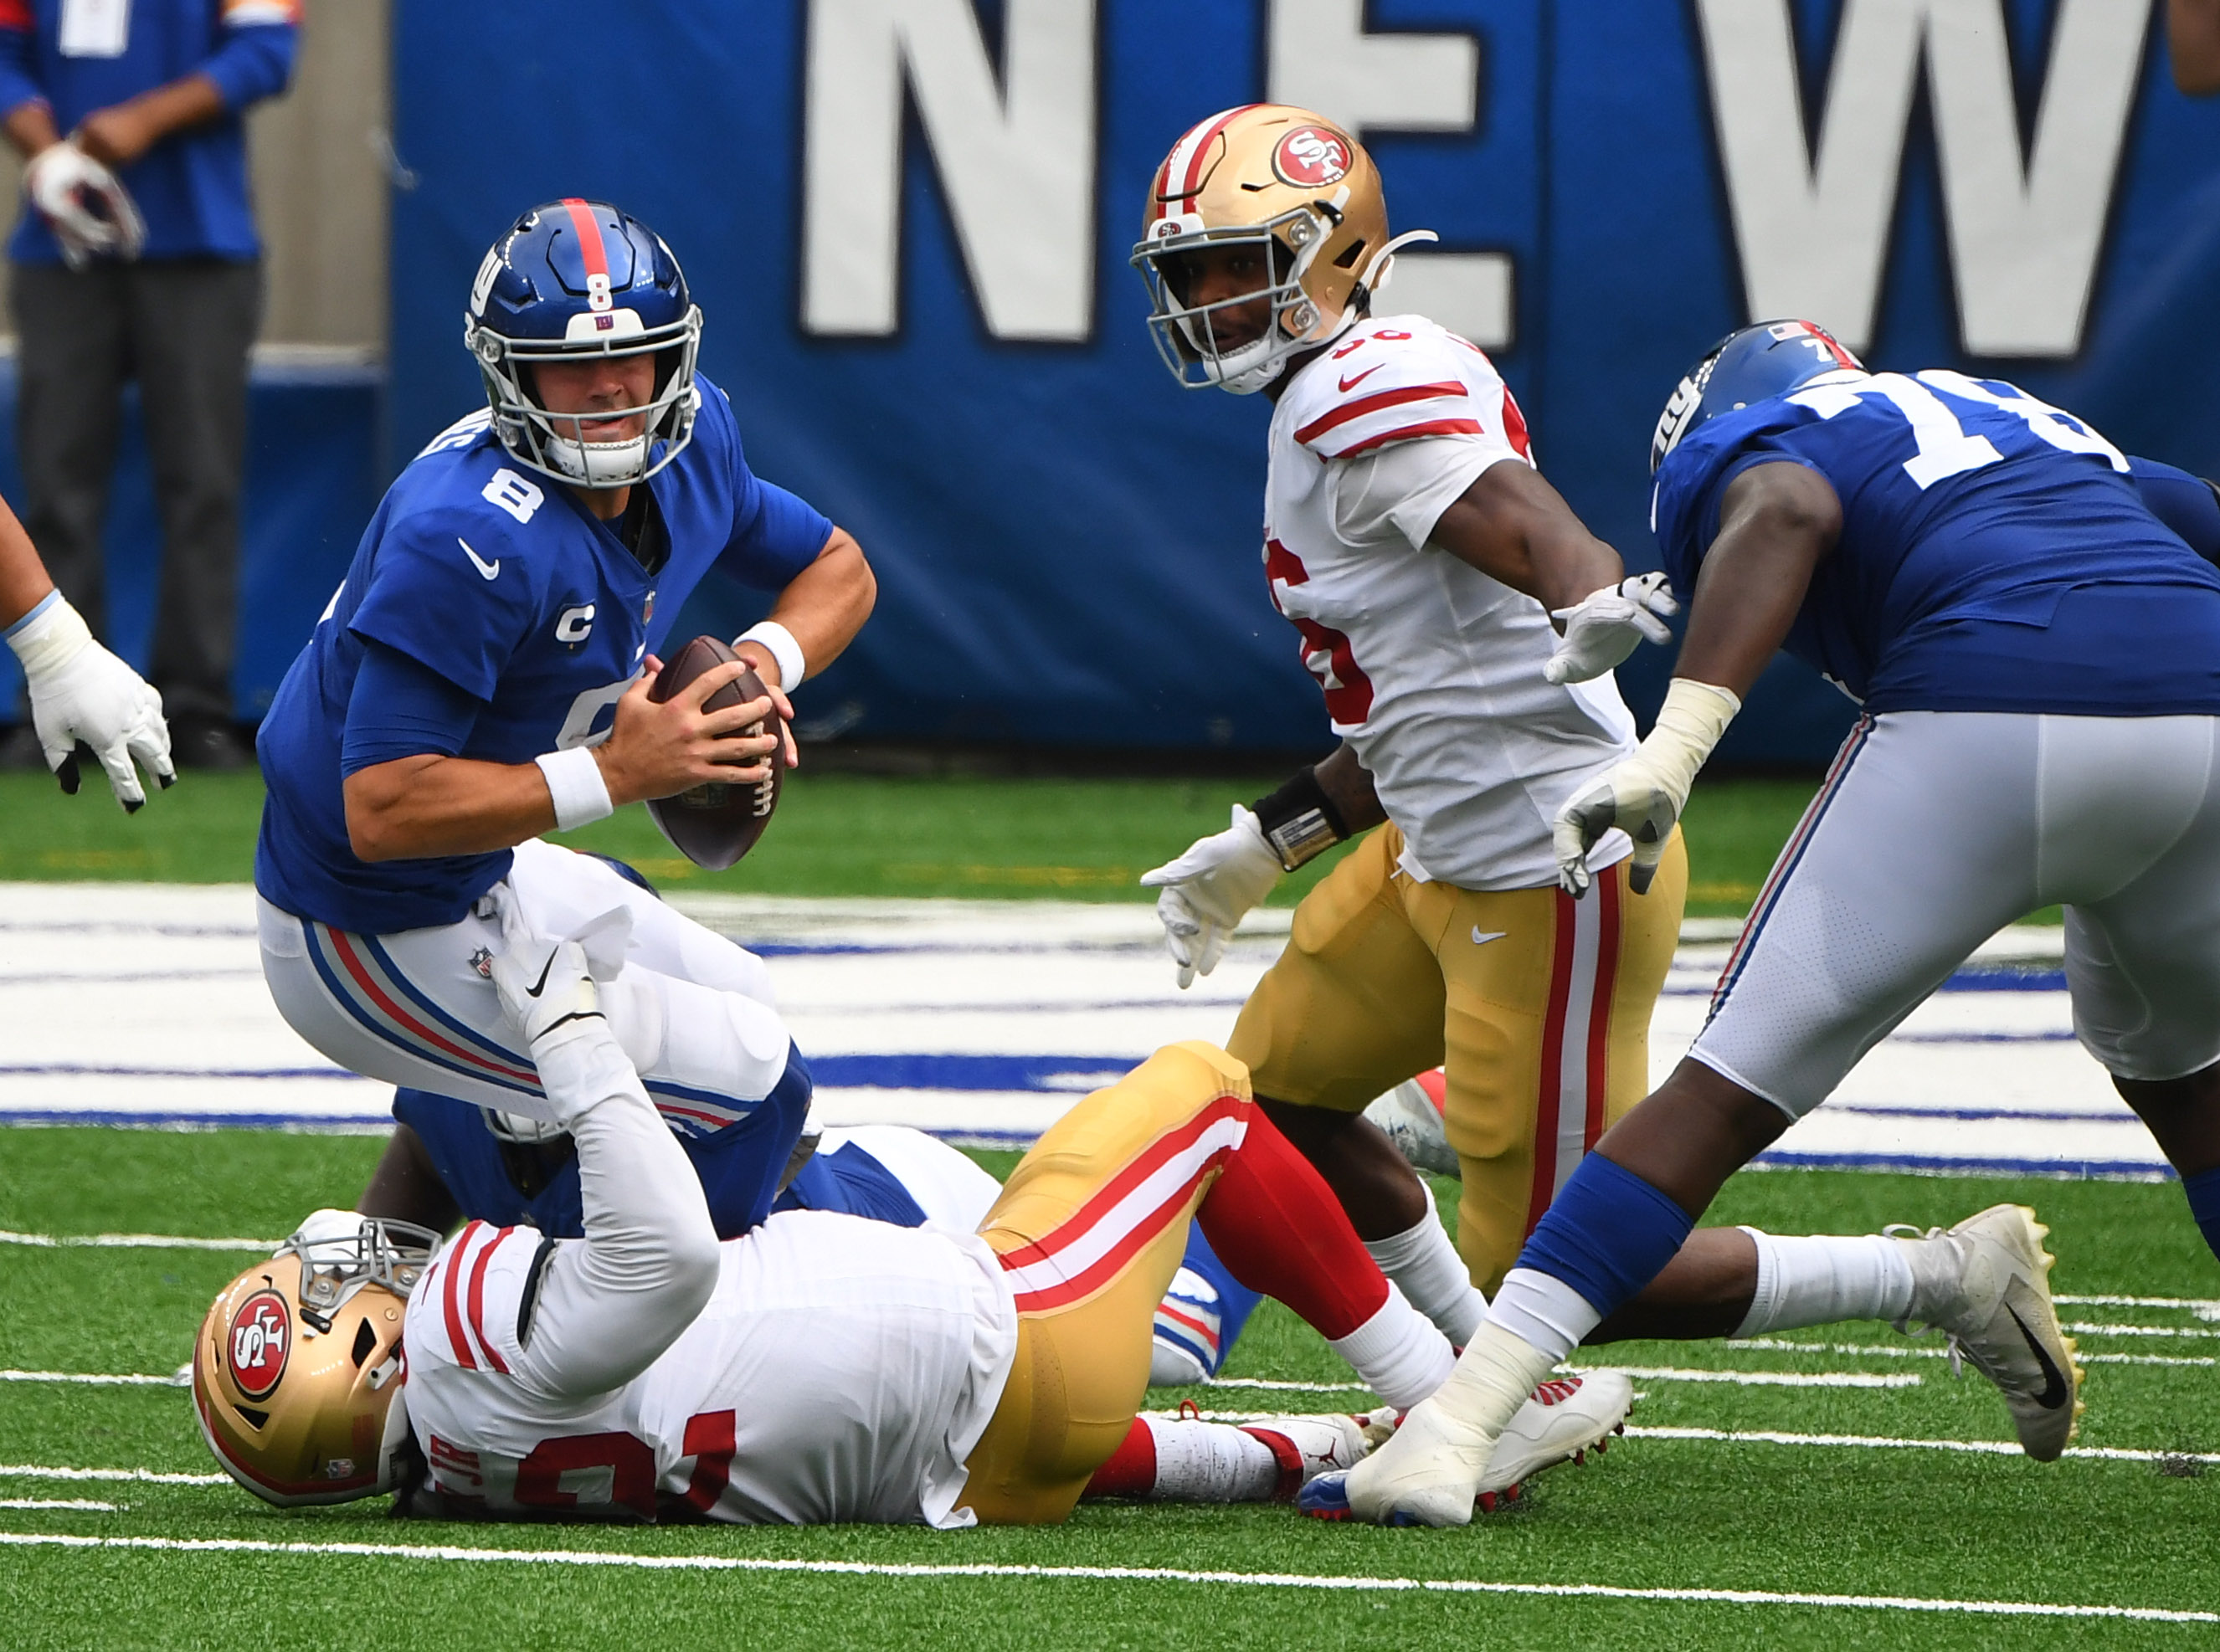 New York Giants quarterback Daniel Jones is sacked by San Francisco 49ers defensive end Kerry Hyder during the third quarter of a NFL football game at MetLife Stadium.